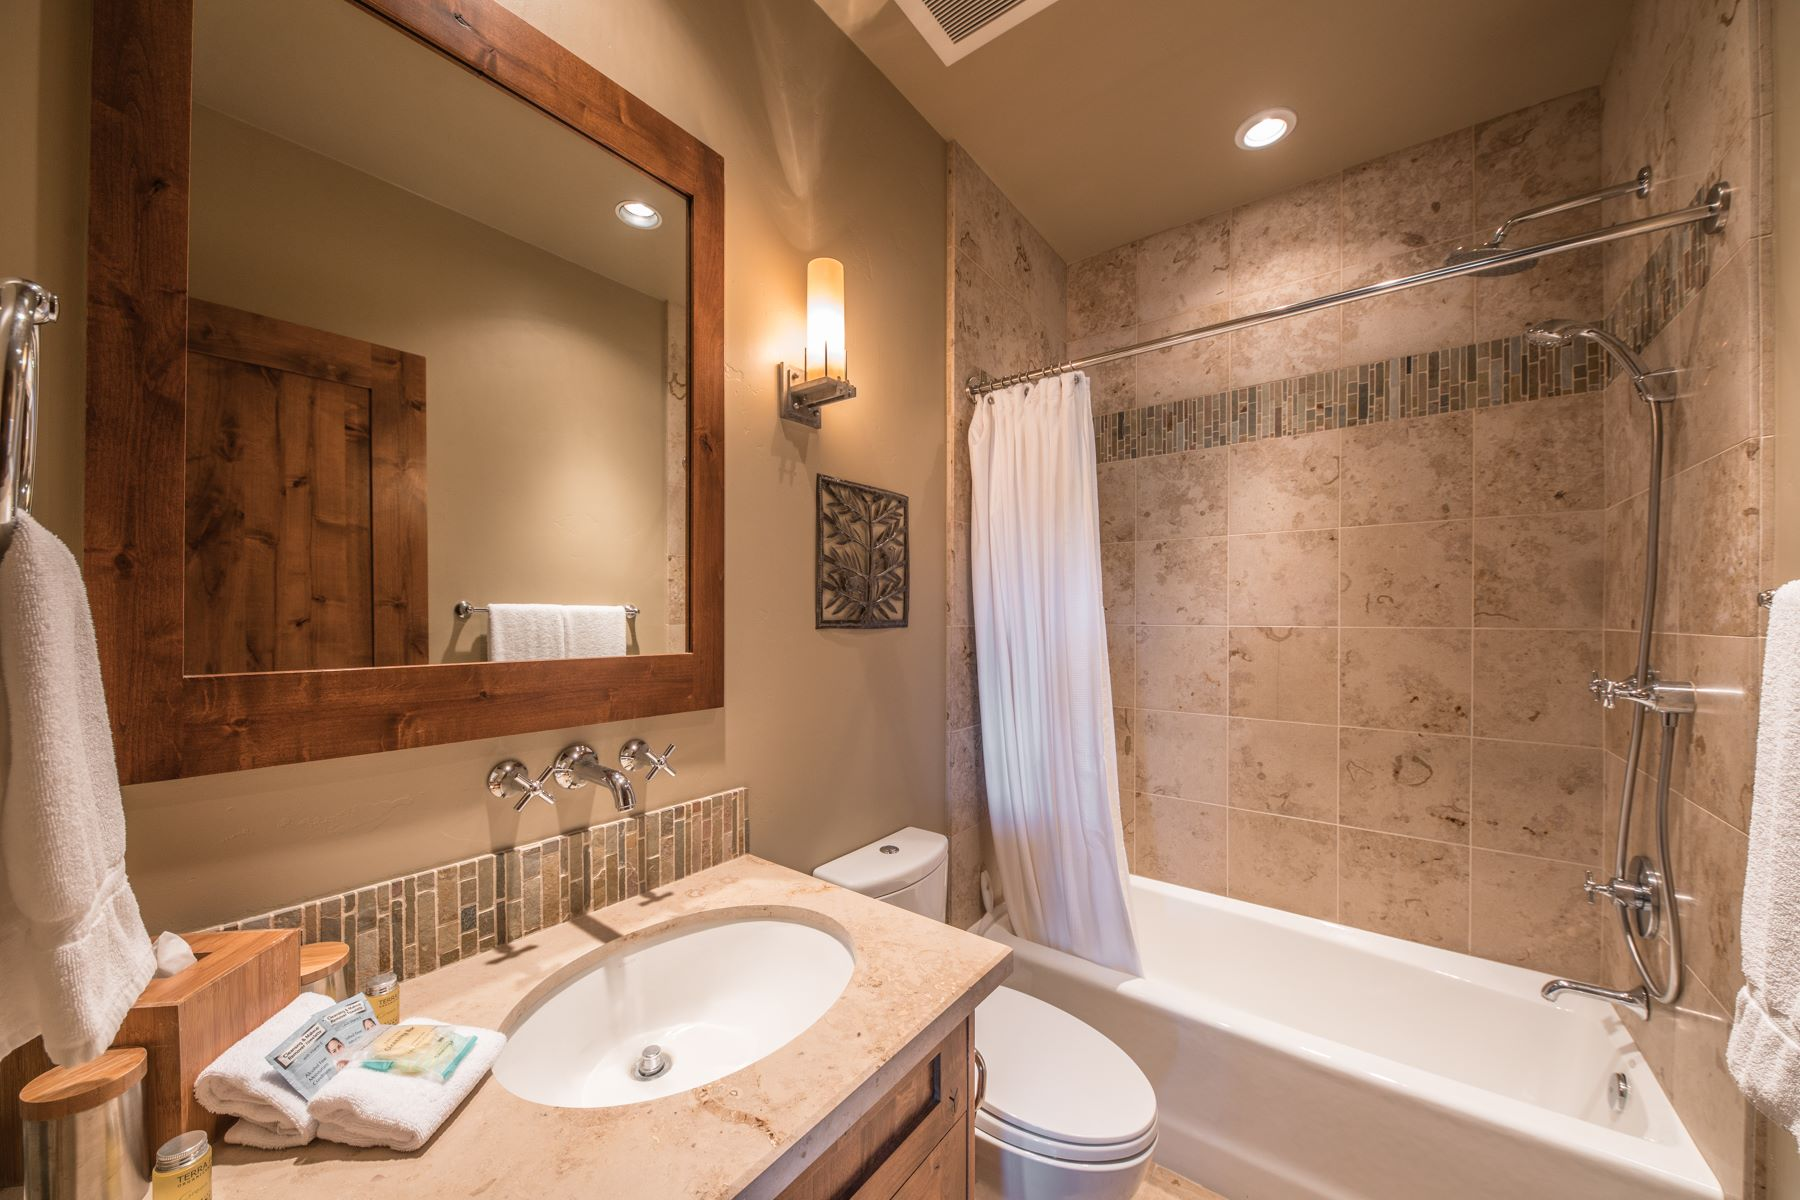 Additional photo for property listing at 14000 Trailside Loop #1 14000 Trailside Loop #1 Truckee, California 96161 United States